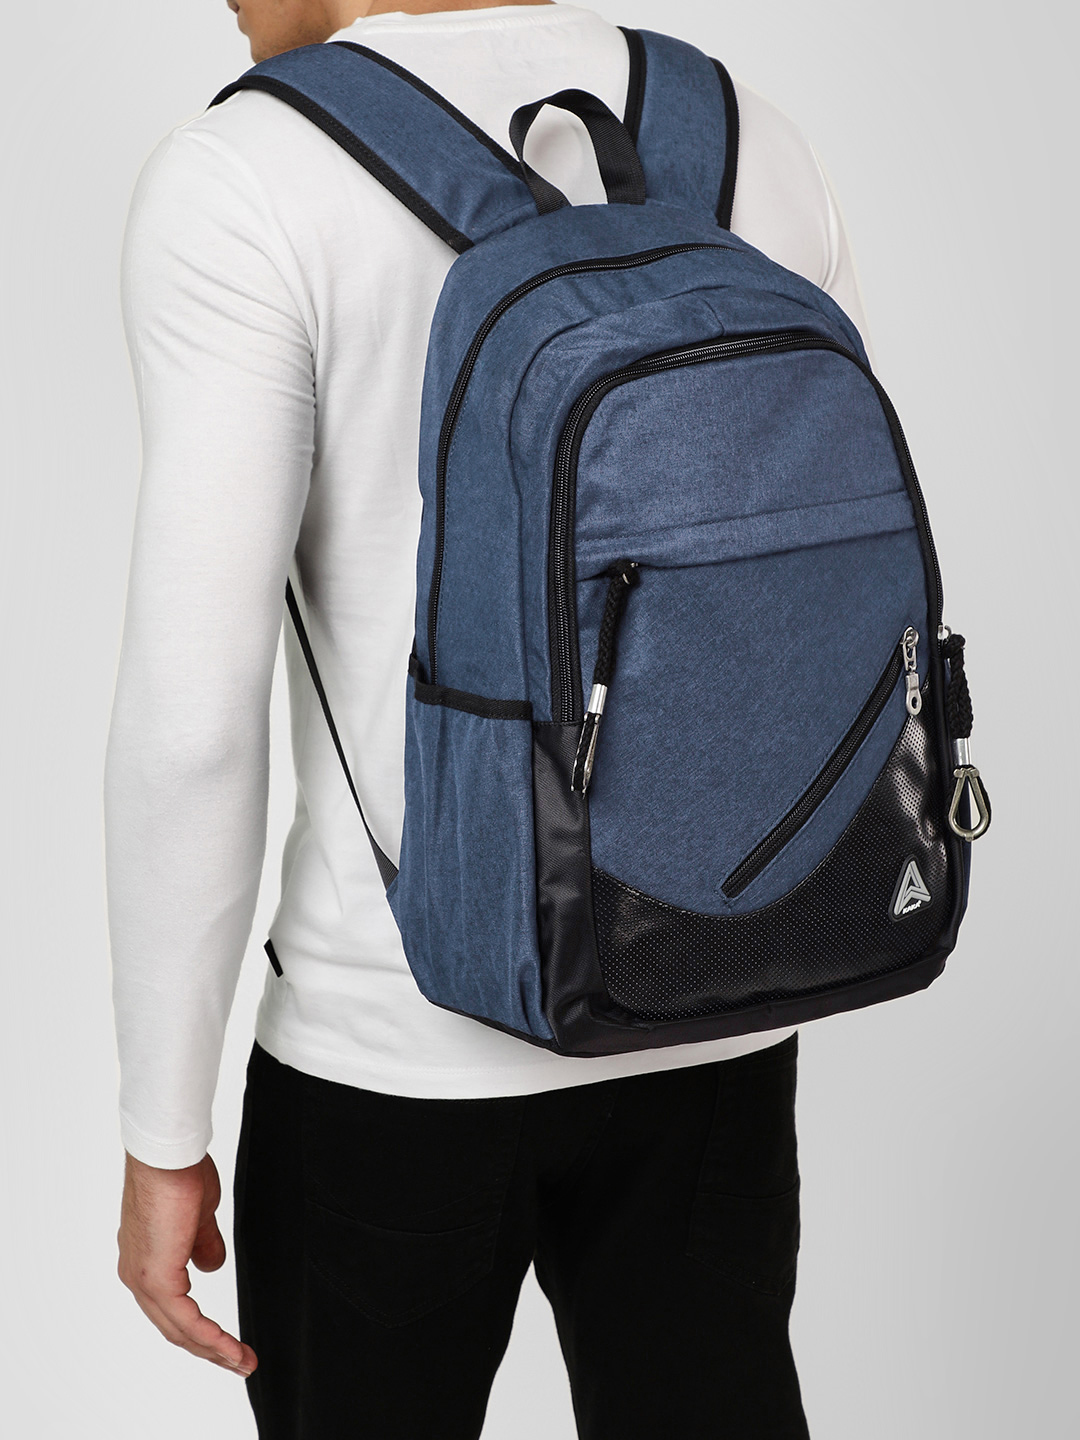 KAKA Blue Two Tone Backpack 1